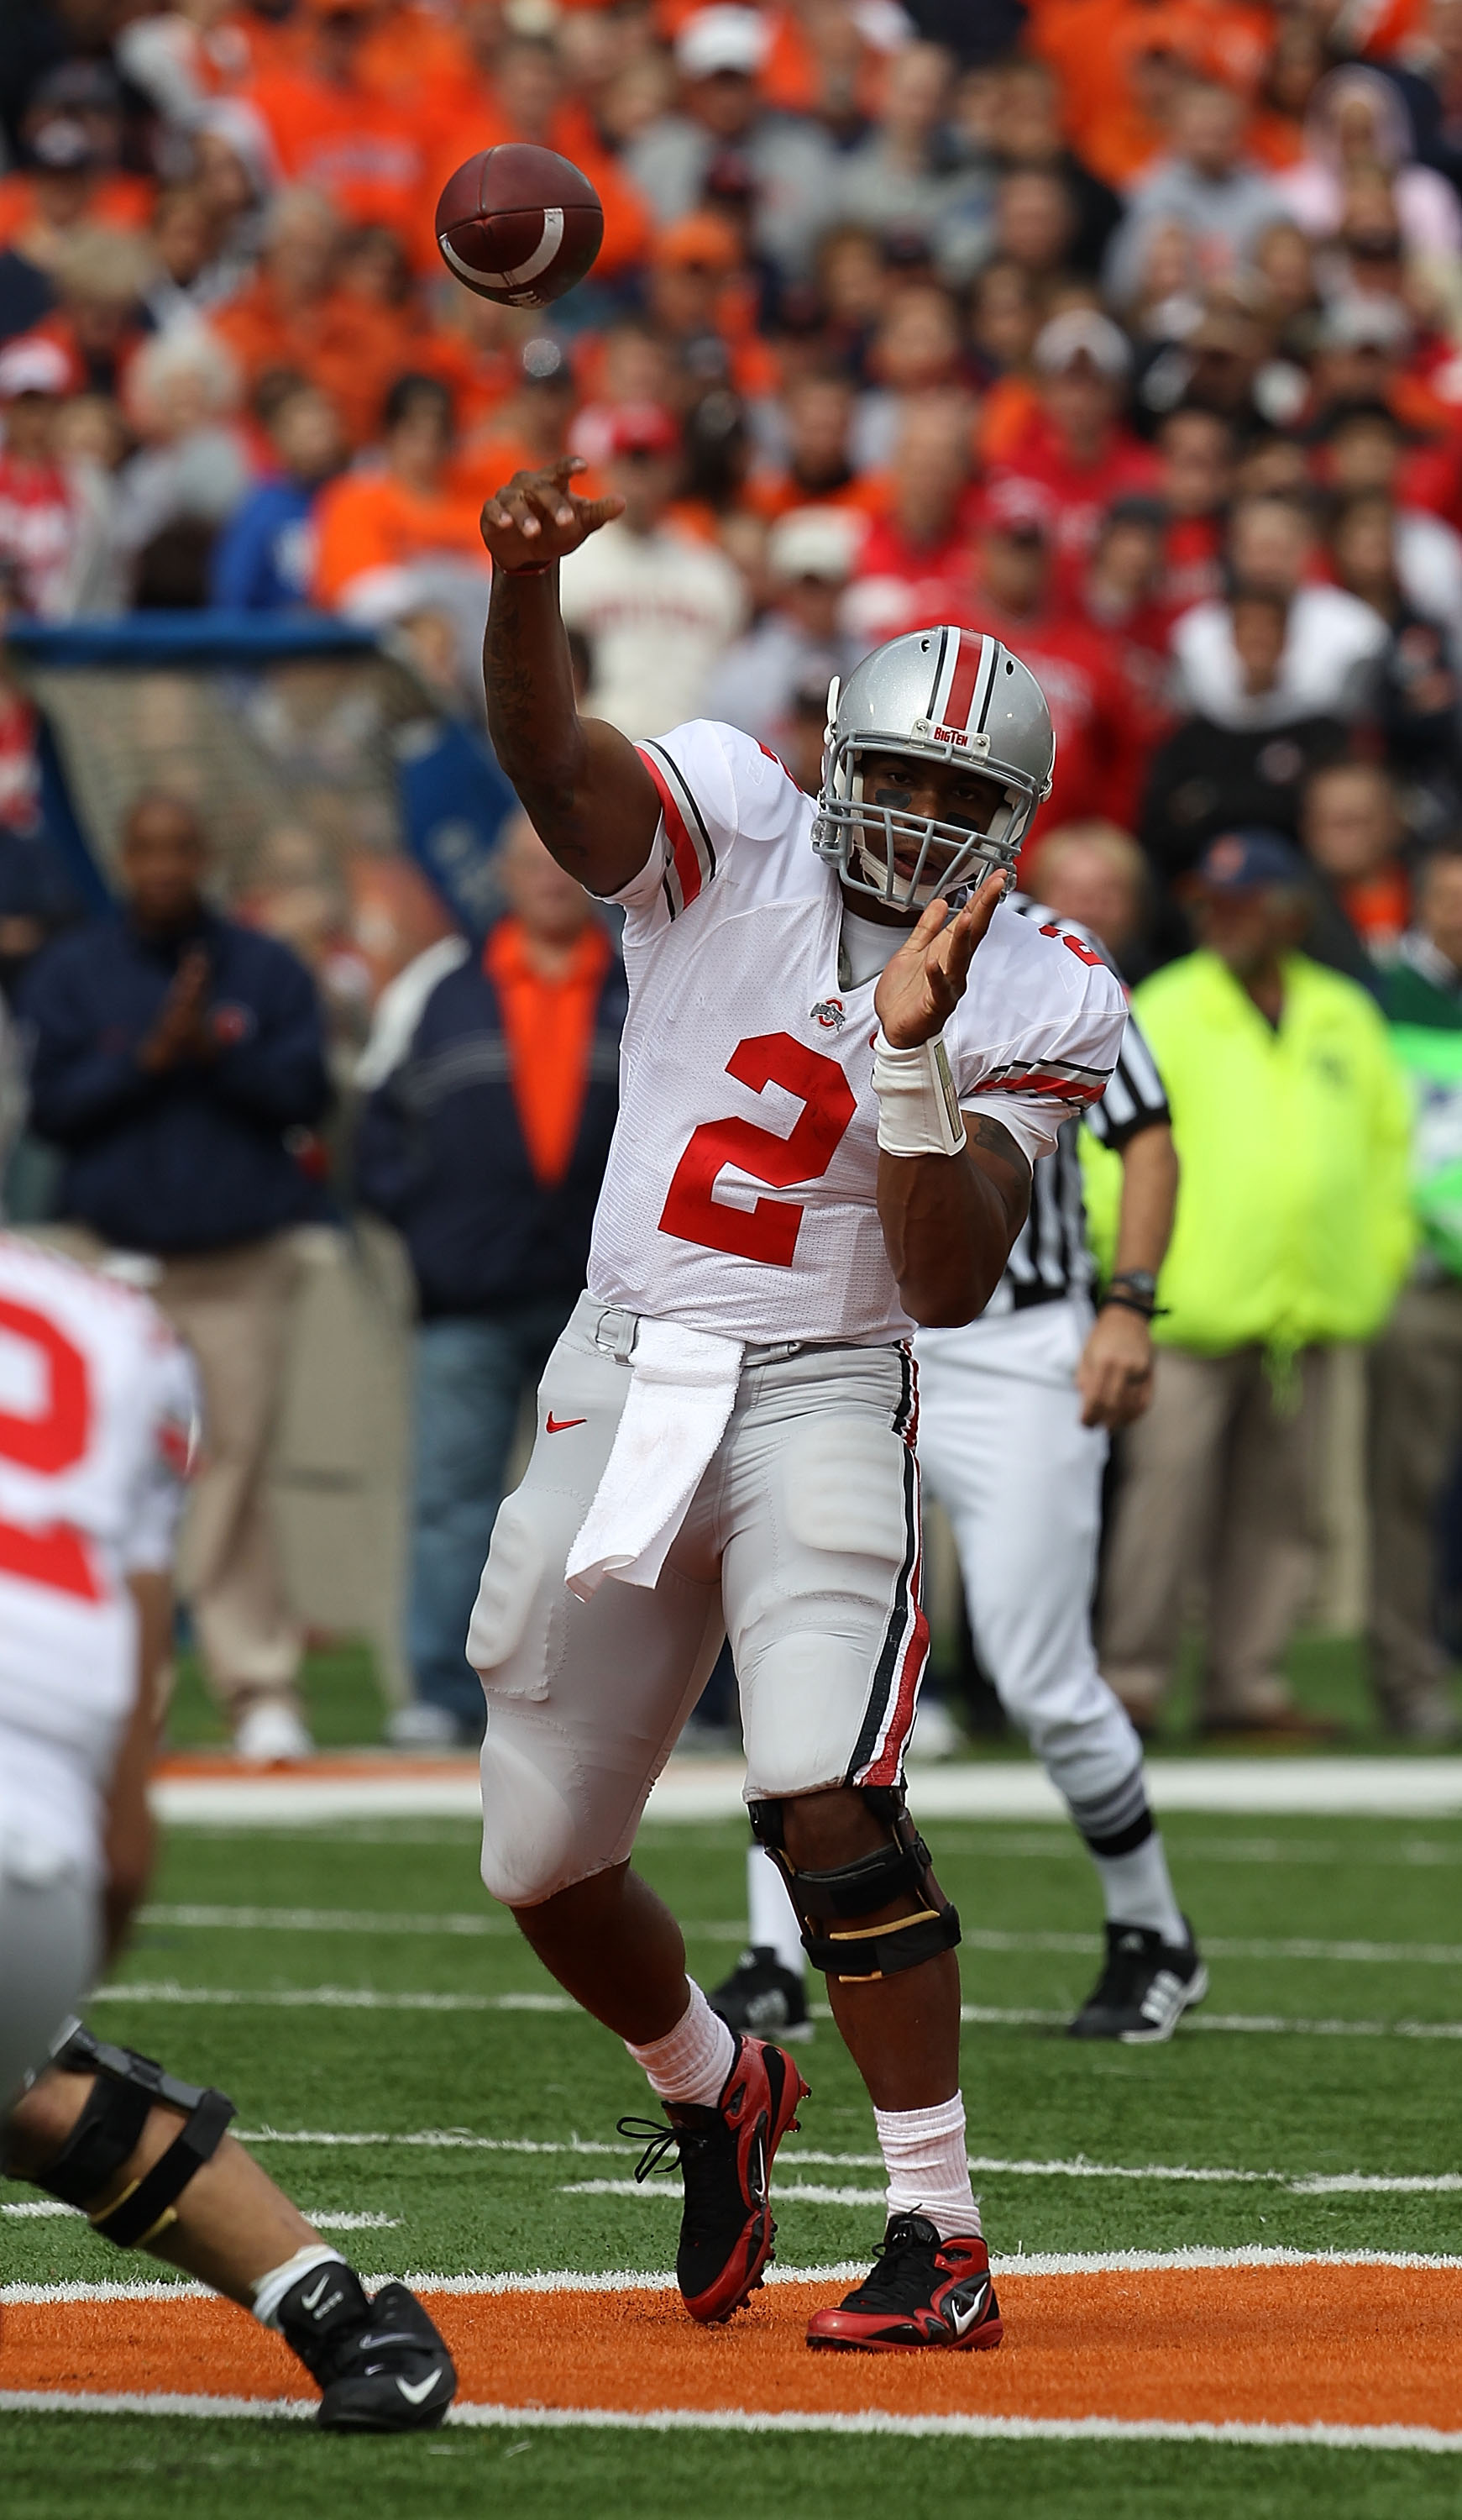 CHAMPAIGN, IL - OCTOBER 02: Terrelle Pryor #2 of the Ohio State Buckeyes throws a pass against the Illinois Fighting Illini at Memorial Stadium on October 2, 2010 in Champaign, Illinois. Ohio State defeated Illinois 24-13. (Photo by Jonathan Daniel/Getty